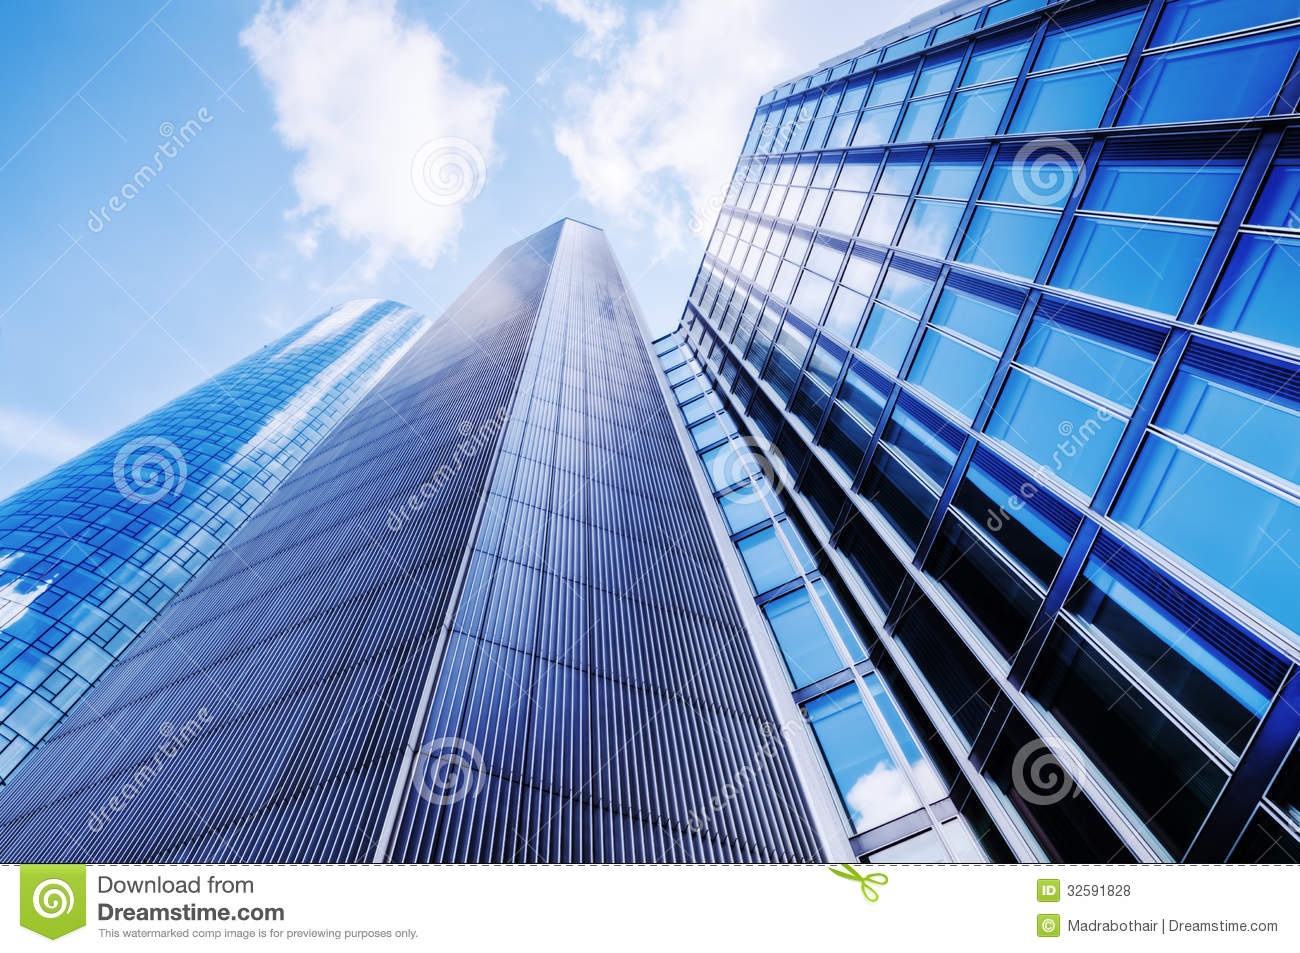 Low Angle View Of Modern Office Buildings Photo: Modern Office Buildings Stock Photo